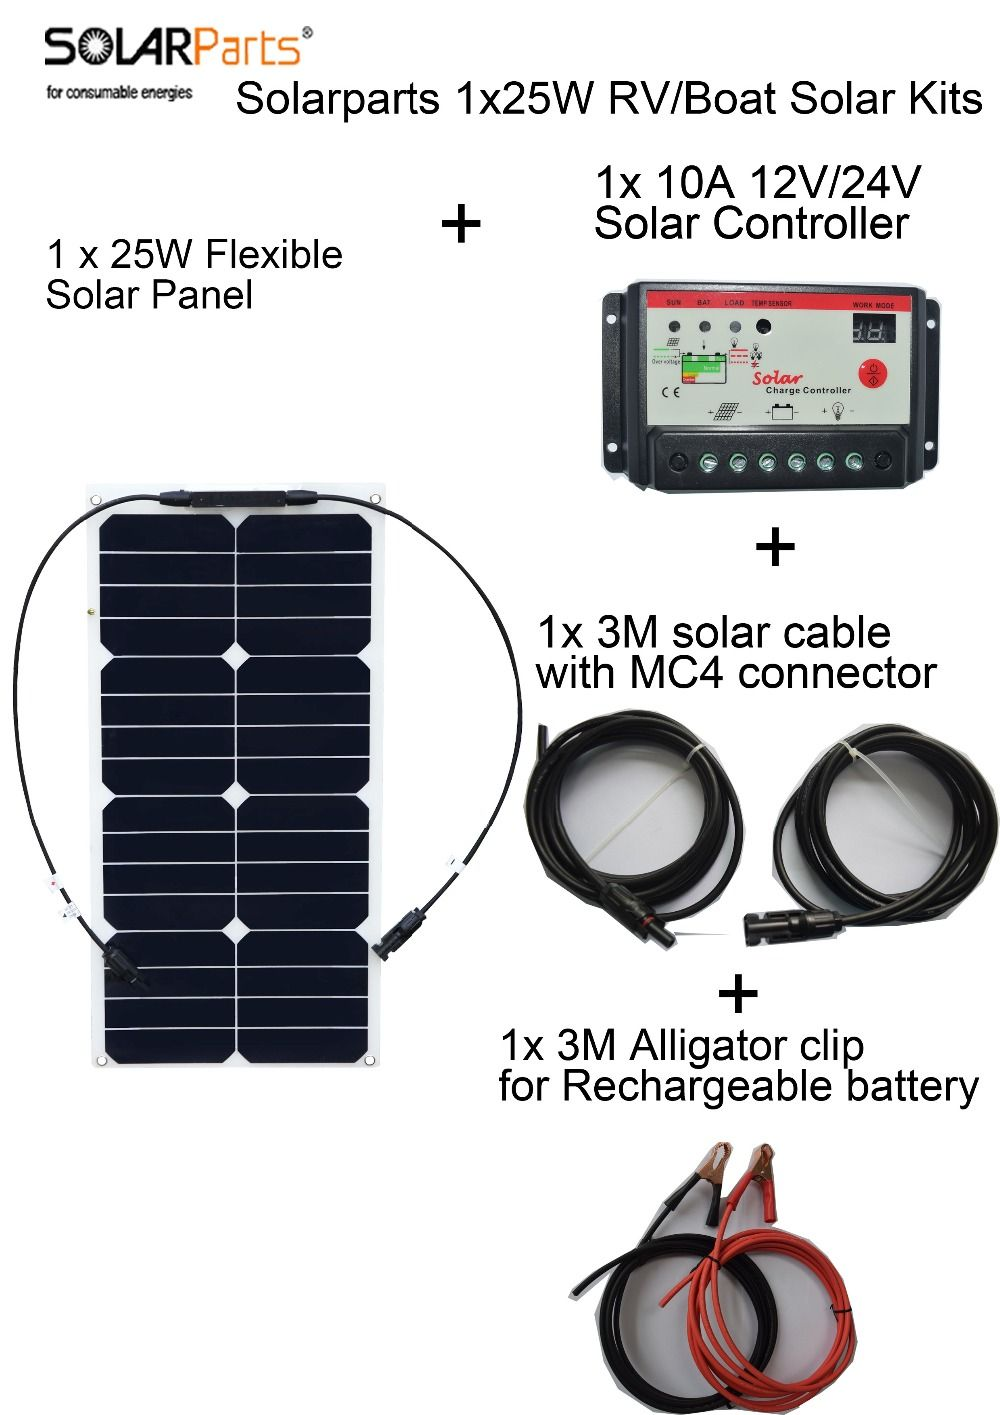 Solarparts 25w Flexible Solar Panel System Solar Cell Controller Cable For Yacht Rv Light 12v Batt Flexible Solar Panels Solar Technology Solar Heating System